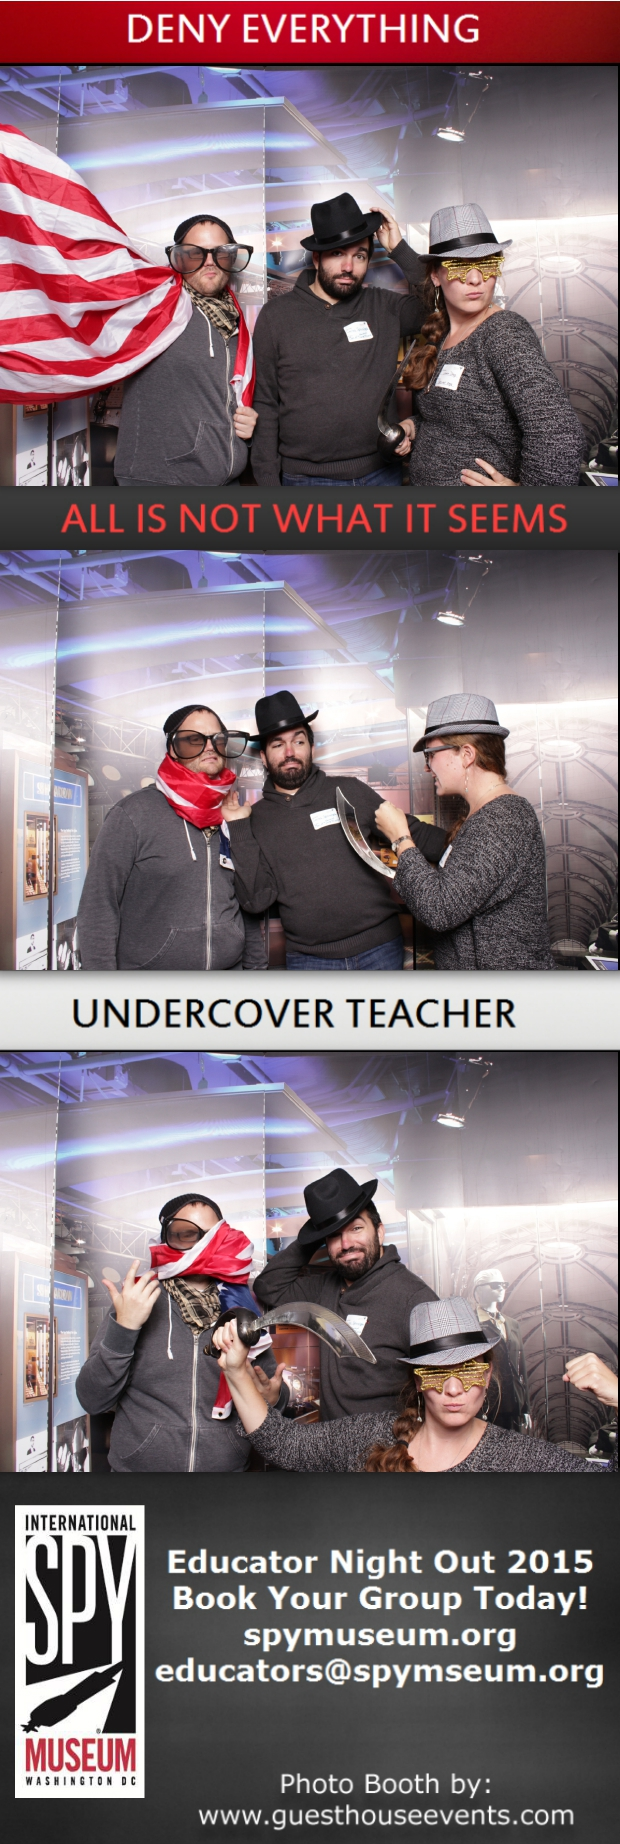 Guest House Events Photo Booth Spy Museum Educator Night Out (82).jpg